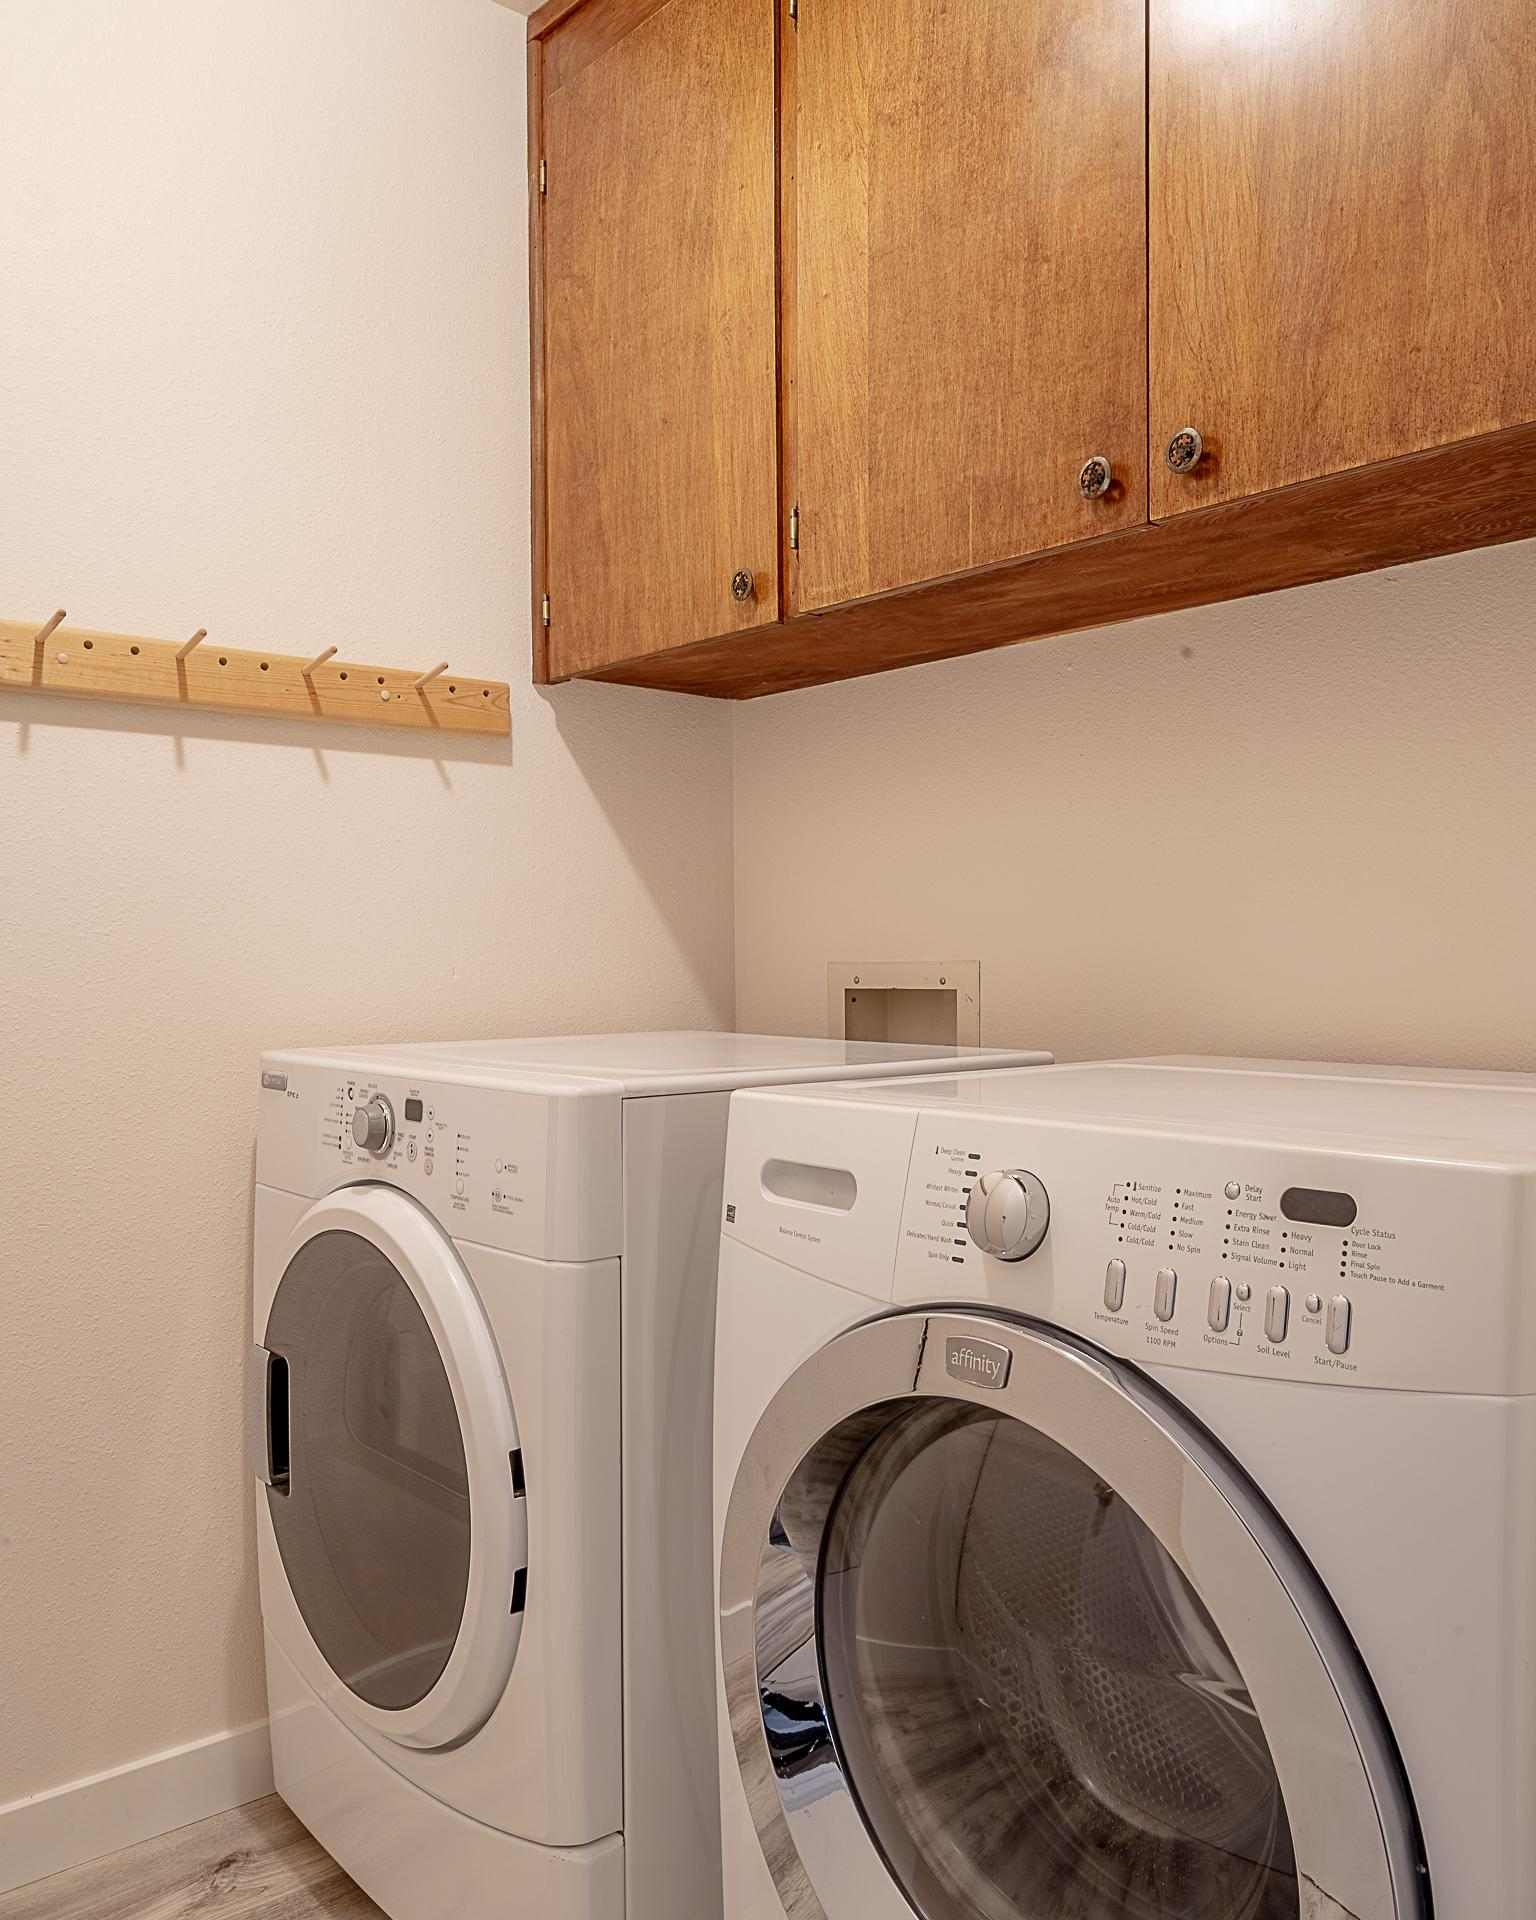 Utility Room with Front Loading Washer & Dryer